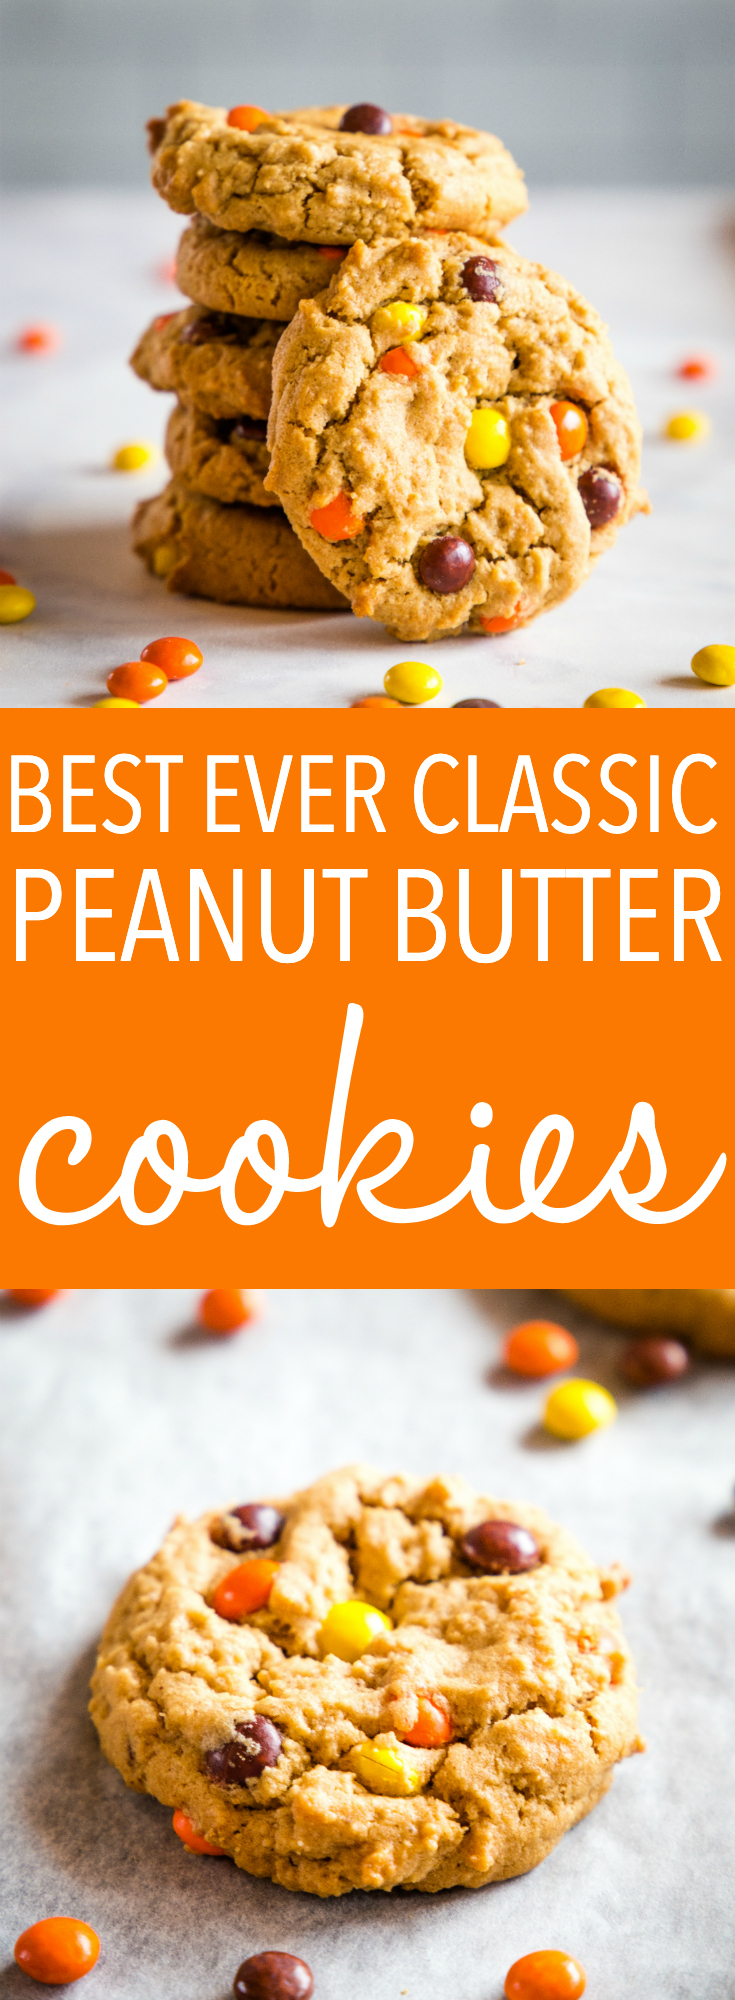 These Best Ever Peanut Butter Cookies are the perfect classic cookie recipe! Crispy on the outside, tender on the inside, and packed with nutty flavour and Reese's Pieces for an added crunch! Recipe from thebusybaker.ca! #cookies #snack #baking #easy #recipe #reeses #peanutbutter #cookie #baked #baker #foodblog via @busybakerblog